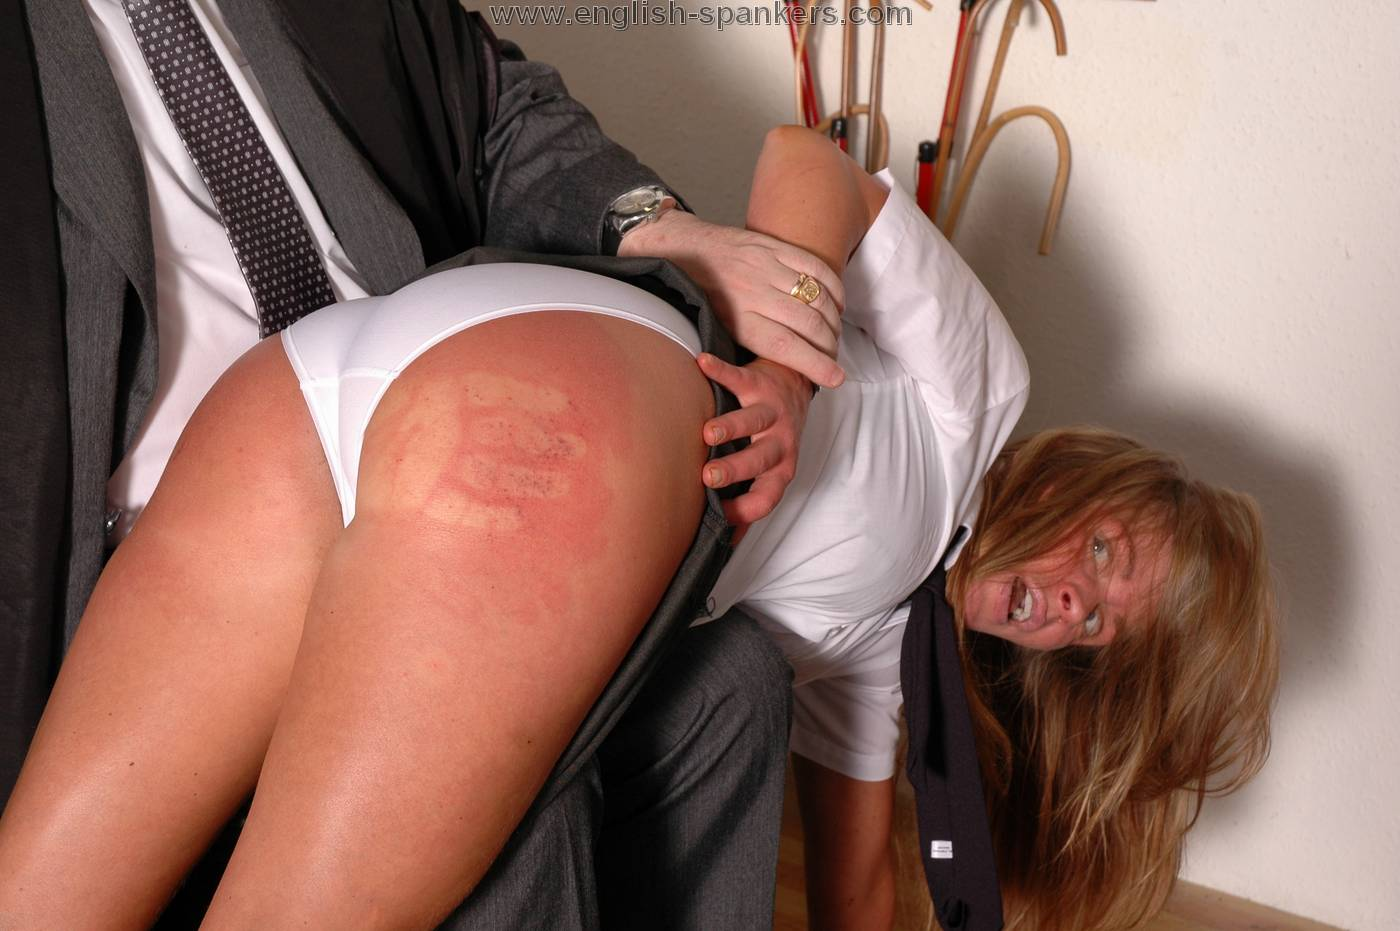 Share spanked on the butt